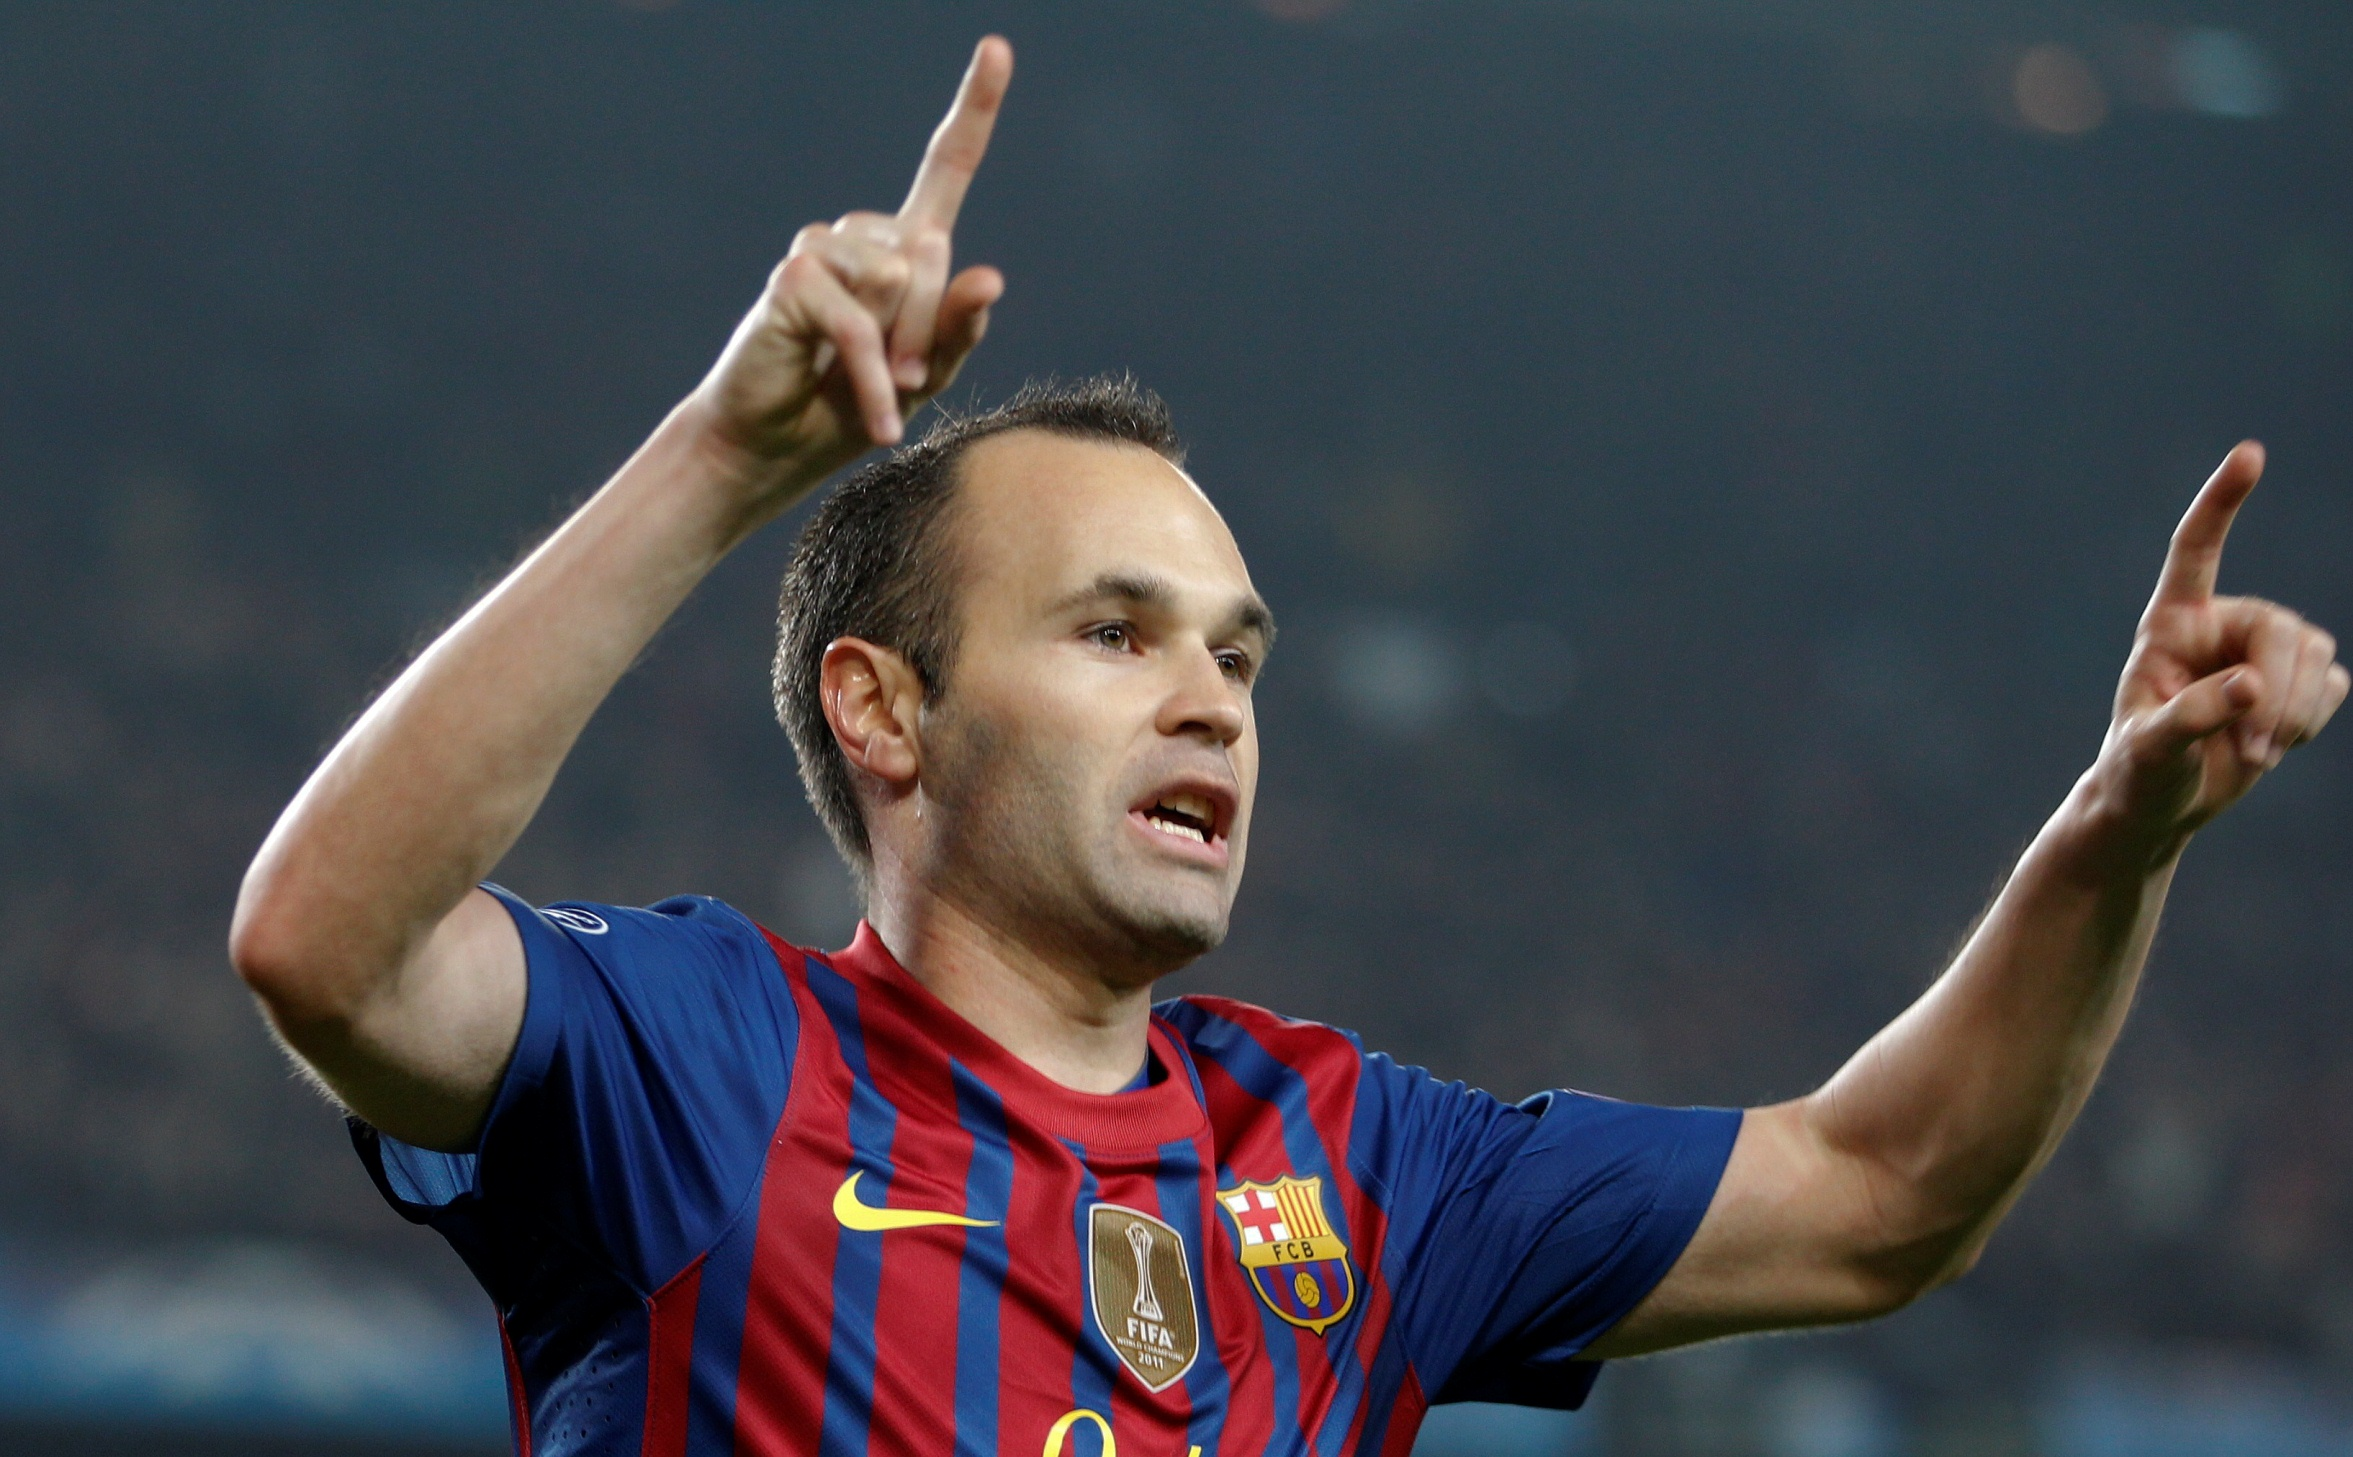 Andres Iniesta Wallpapers High Quality